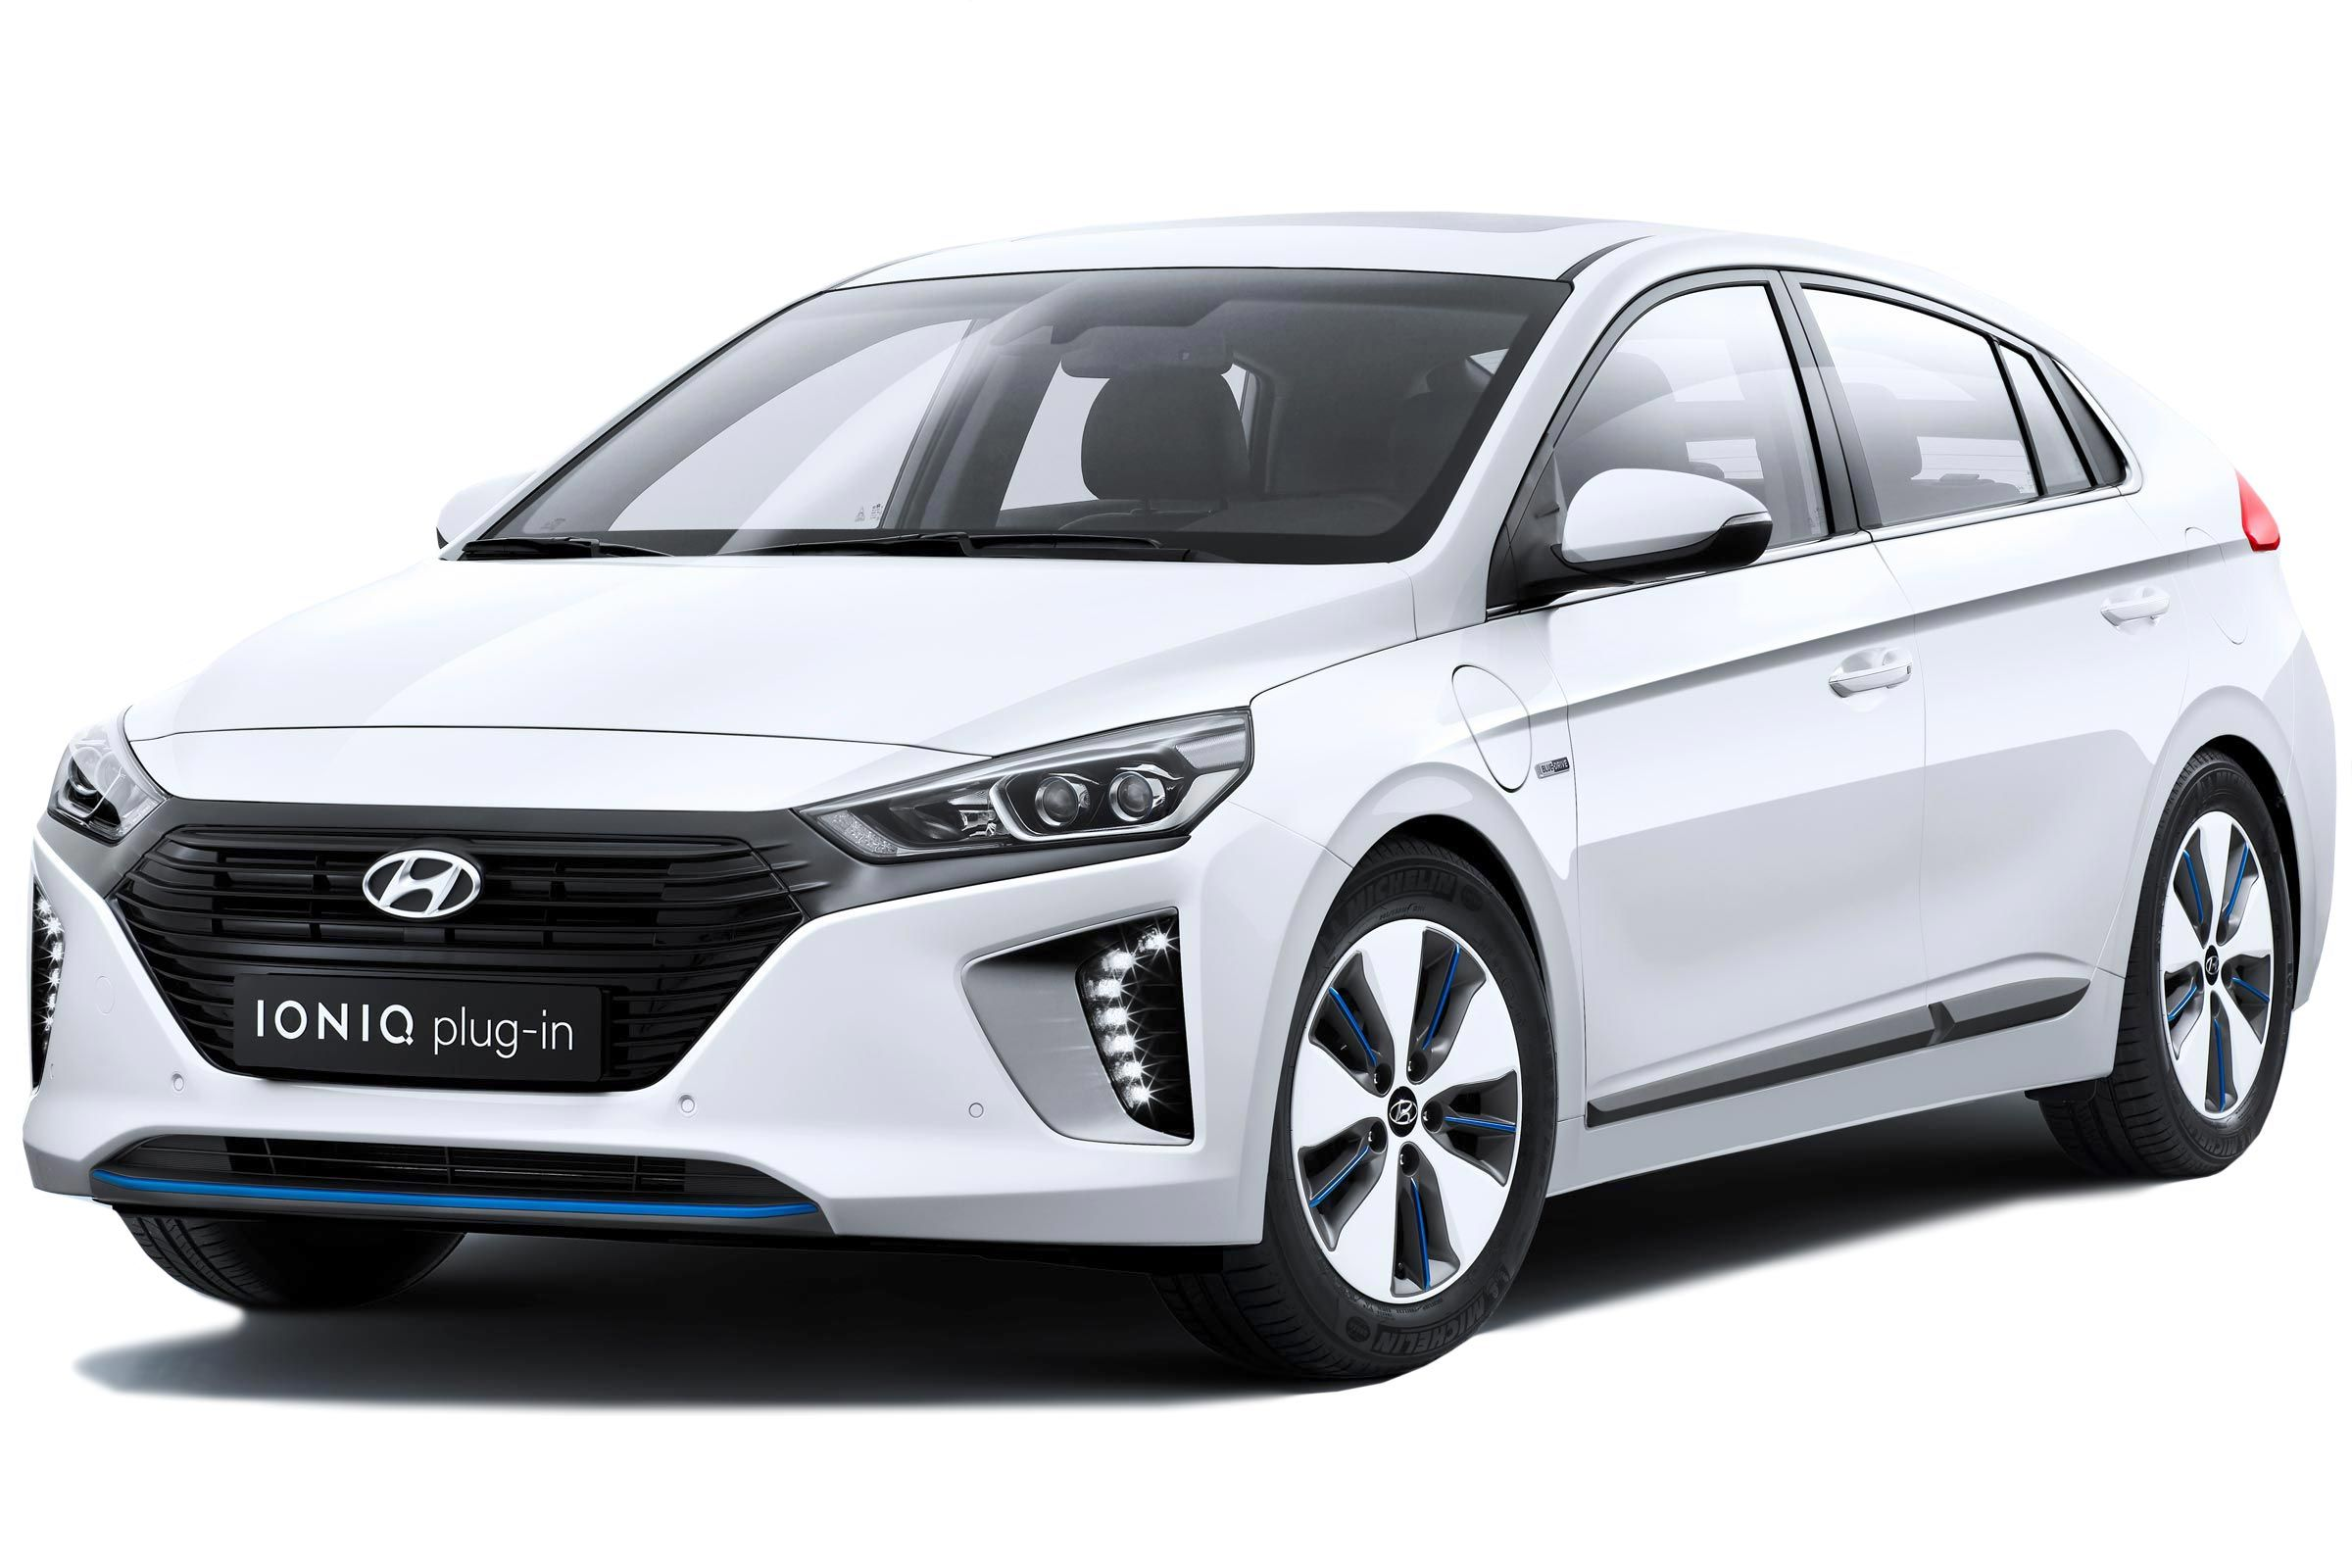 Hyundai Ioniq PlugIn Hybrid prices & specifications